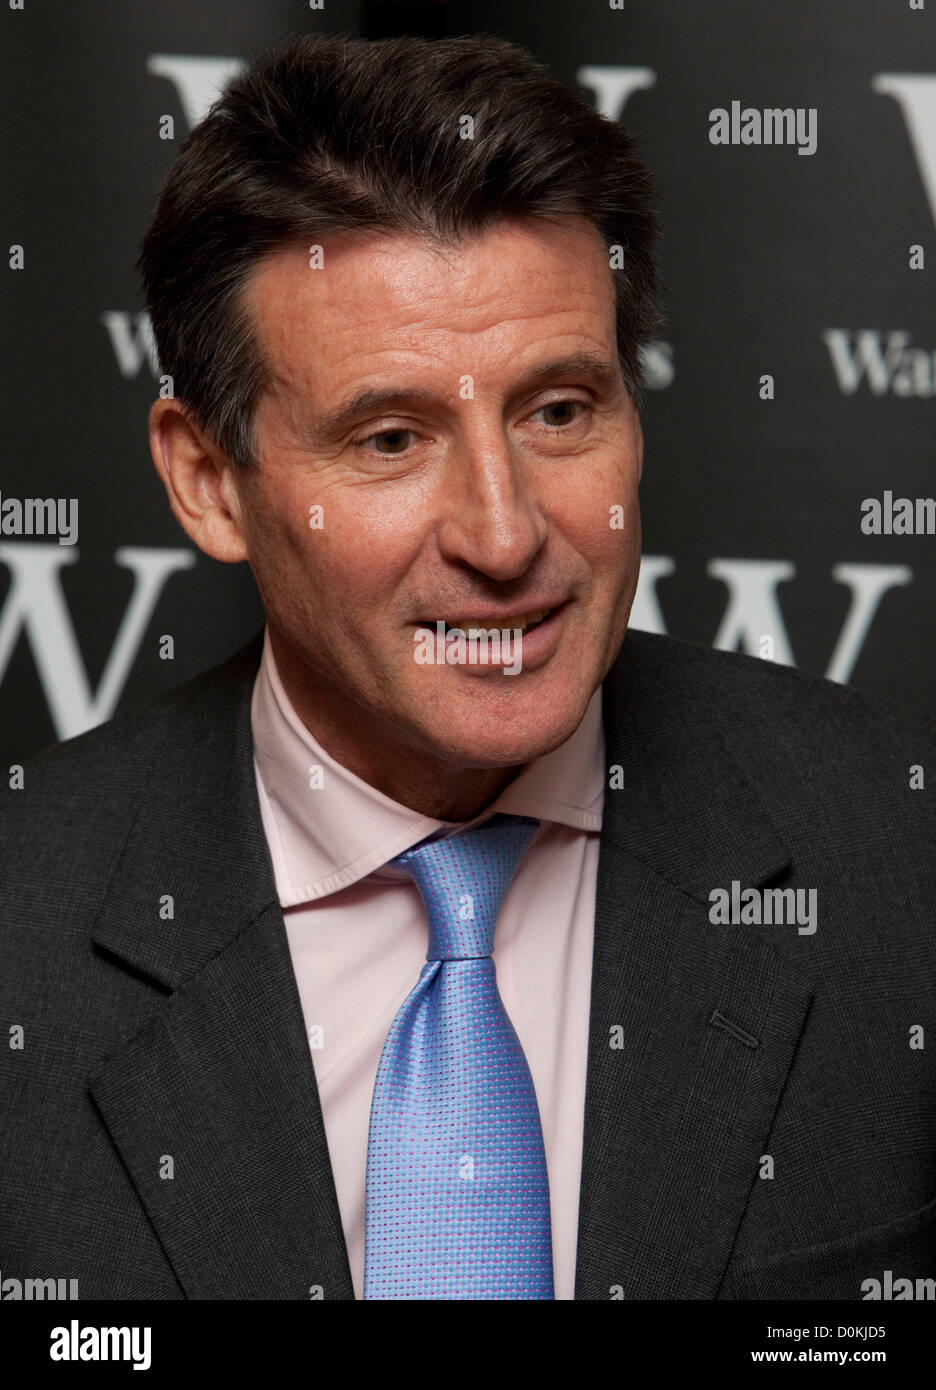 Sebastian Coe book signing at Waterstones in Leadenhall Market, london, this lunchtime (15/11/2012) - Stock Image